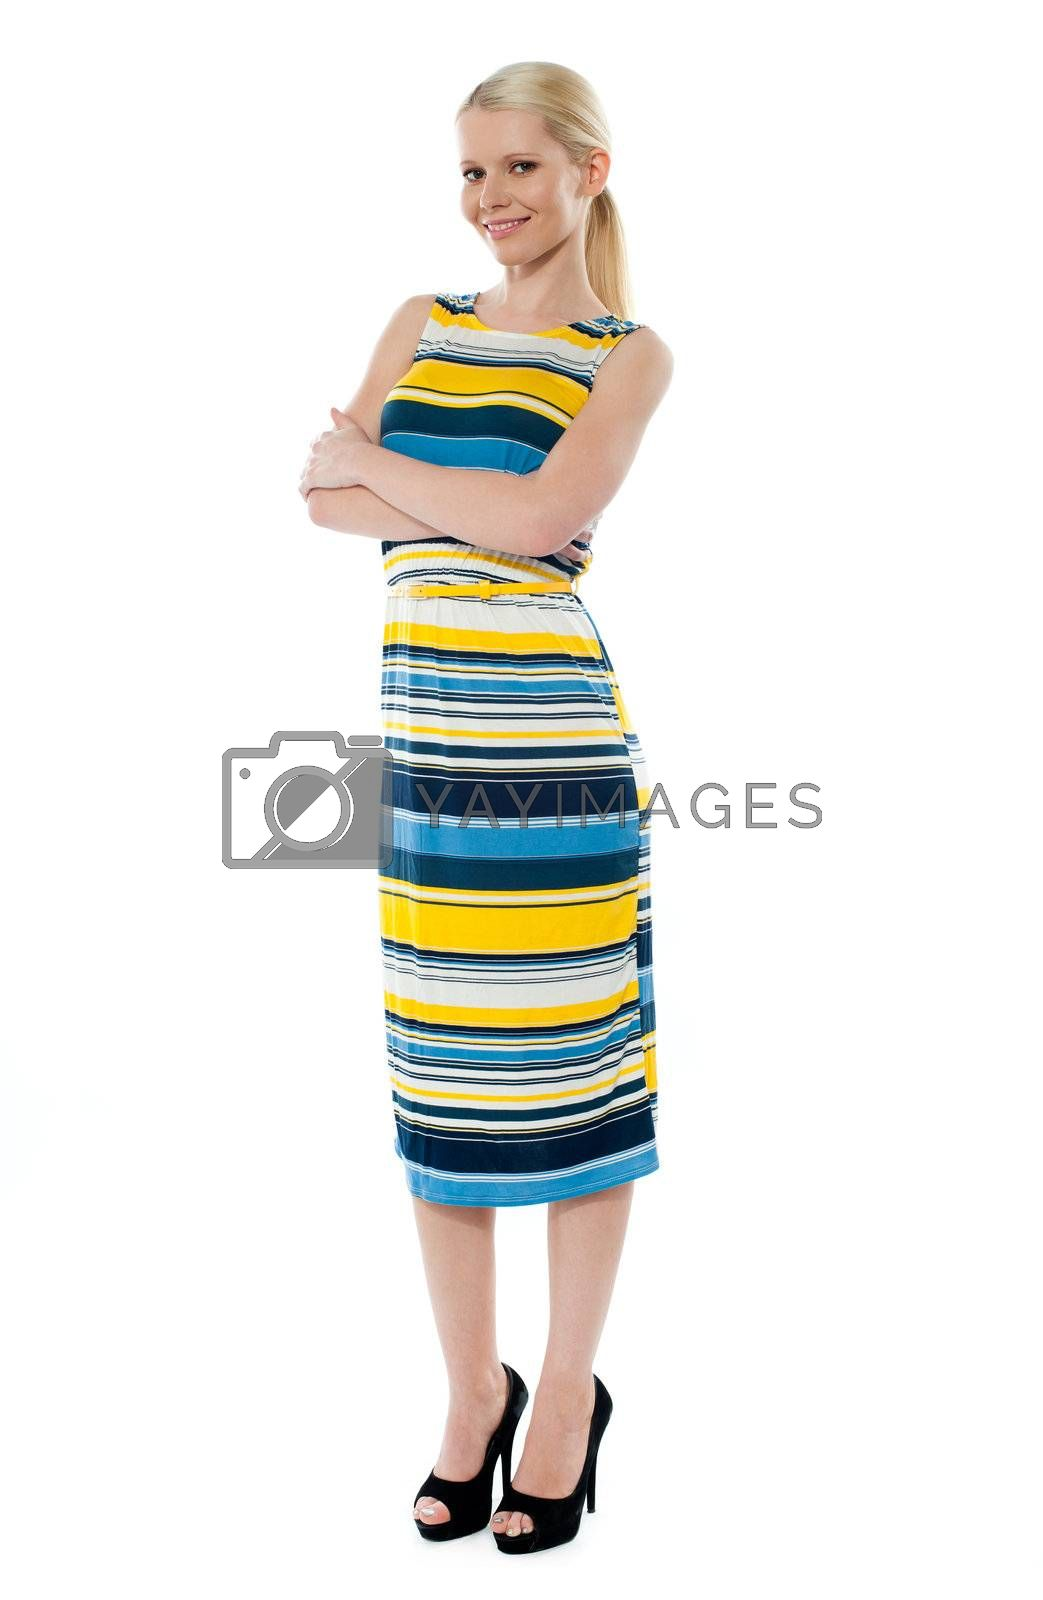 Pretty girl smiling and posing with folded arms against white background